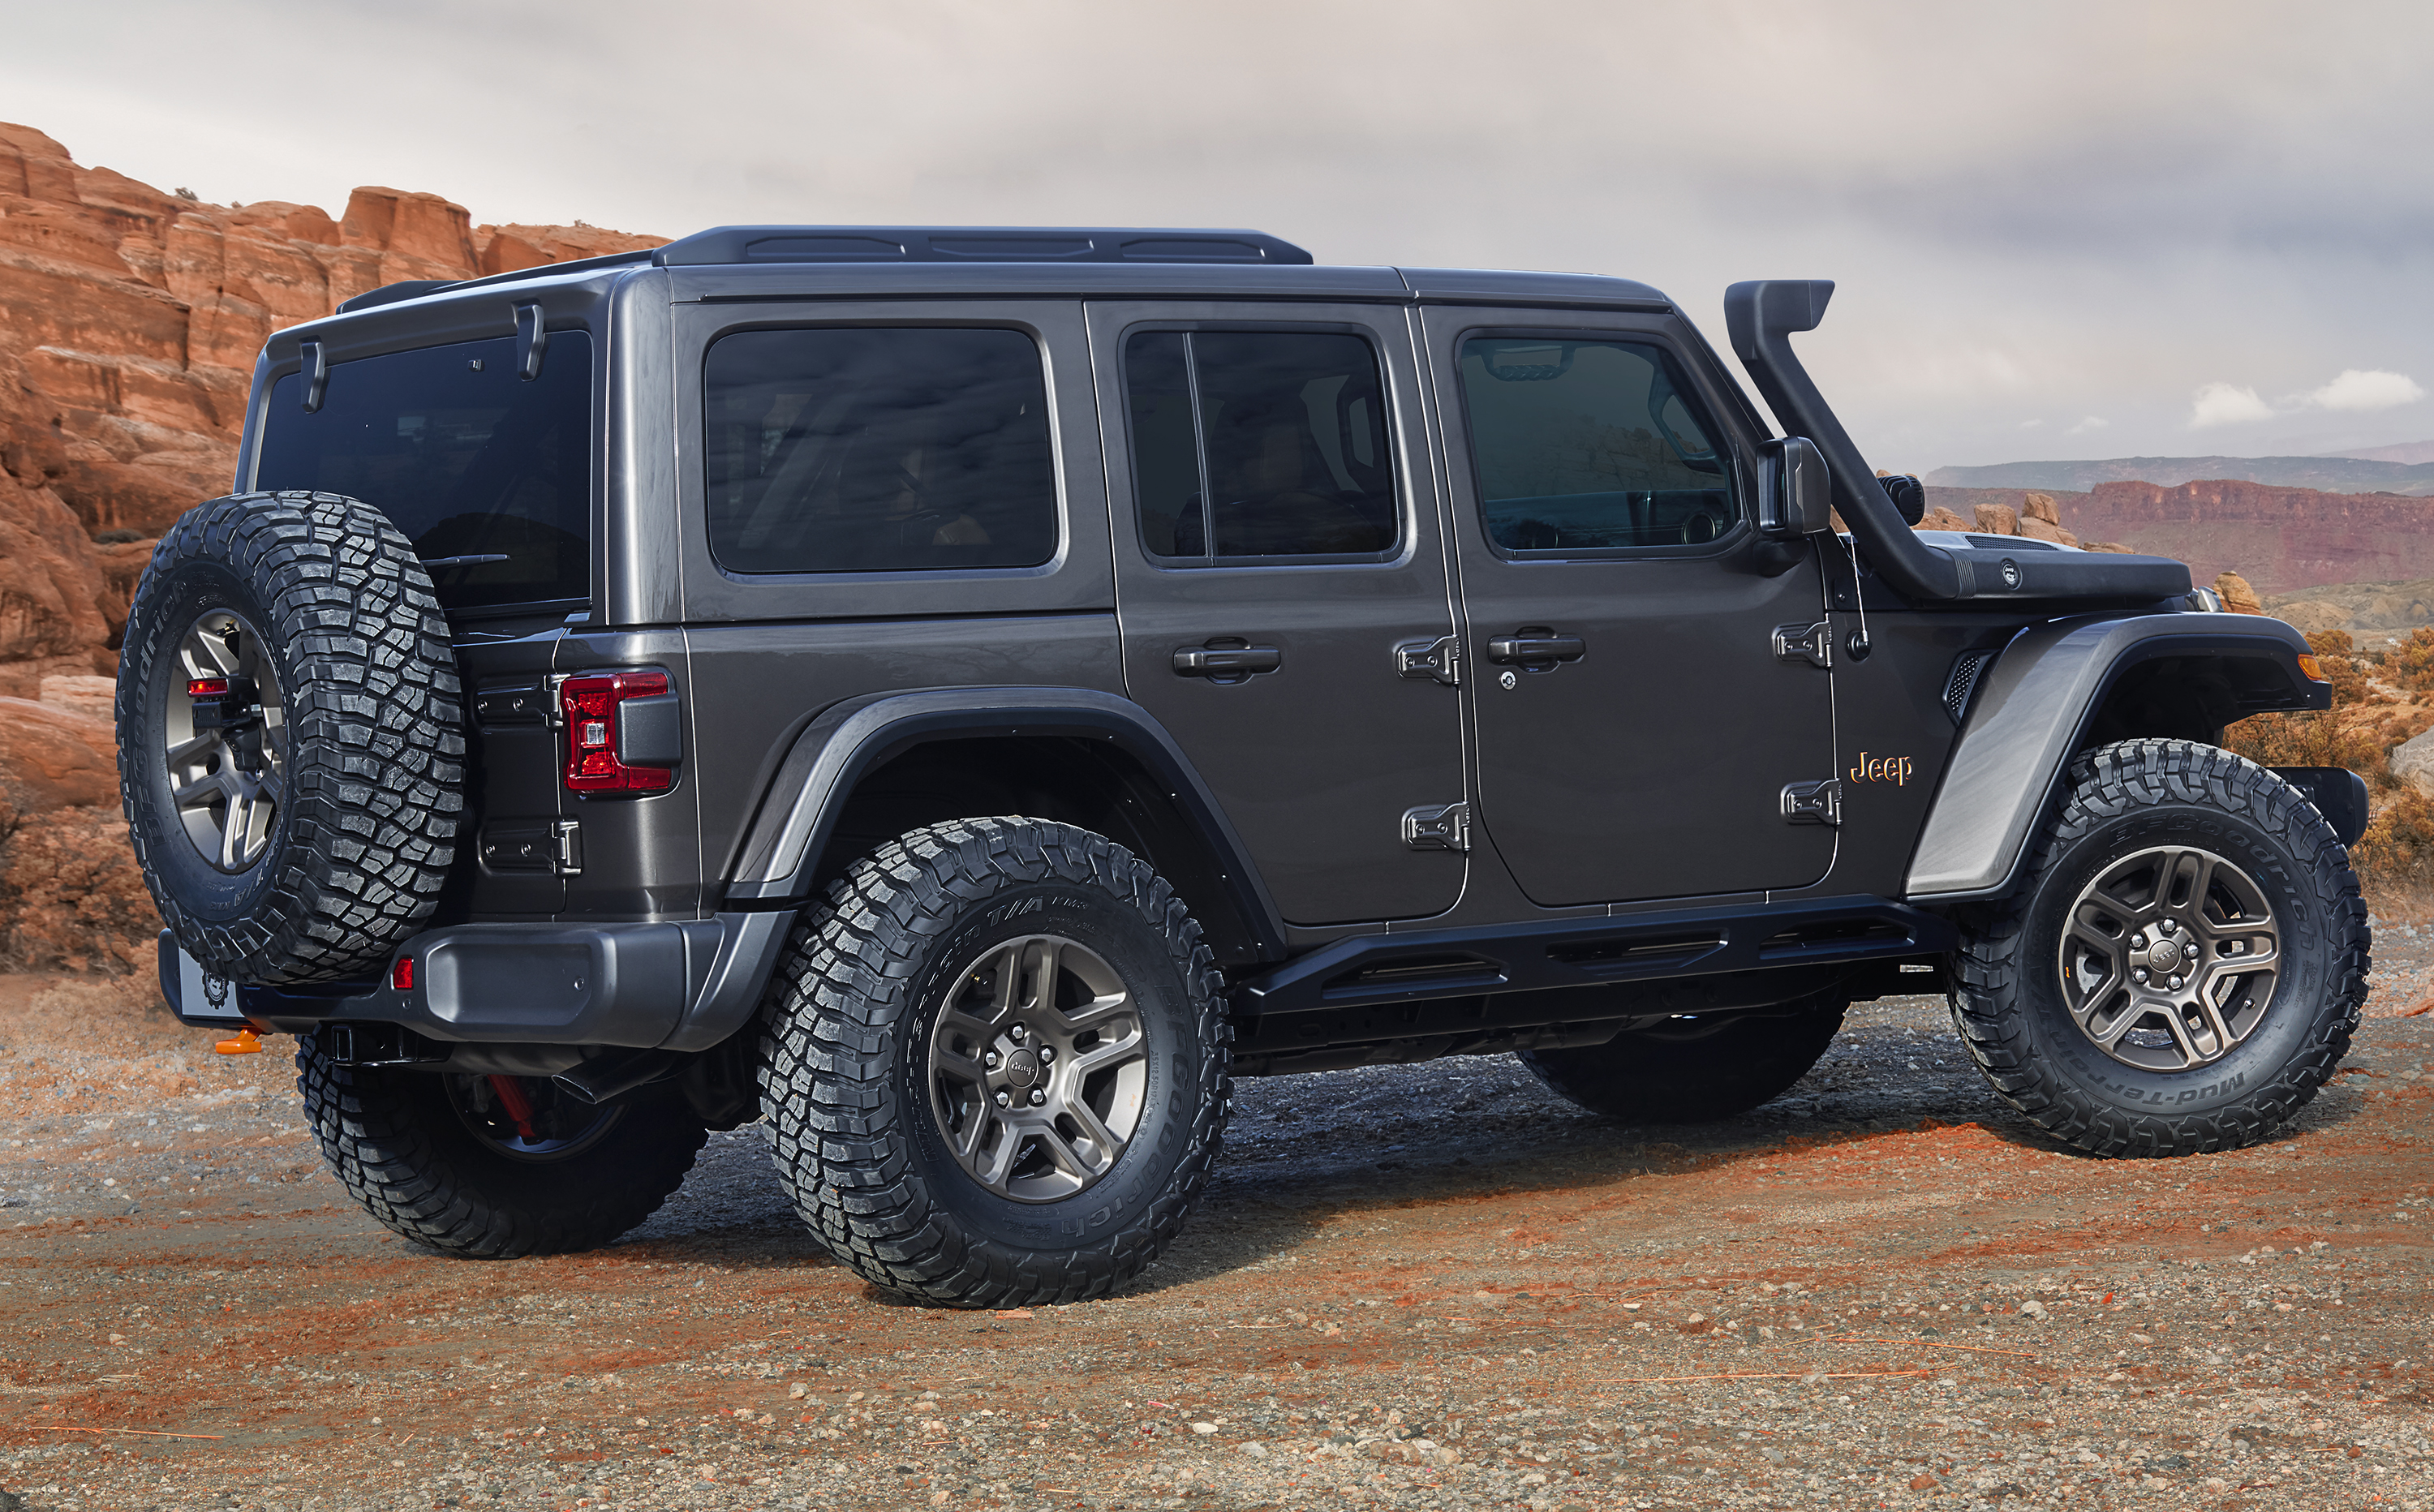 2021 Jeep Patriot Price, Design and Review